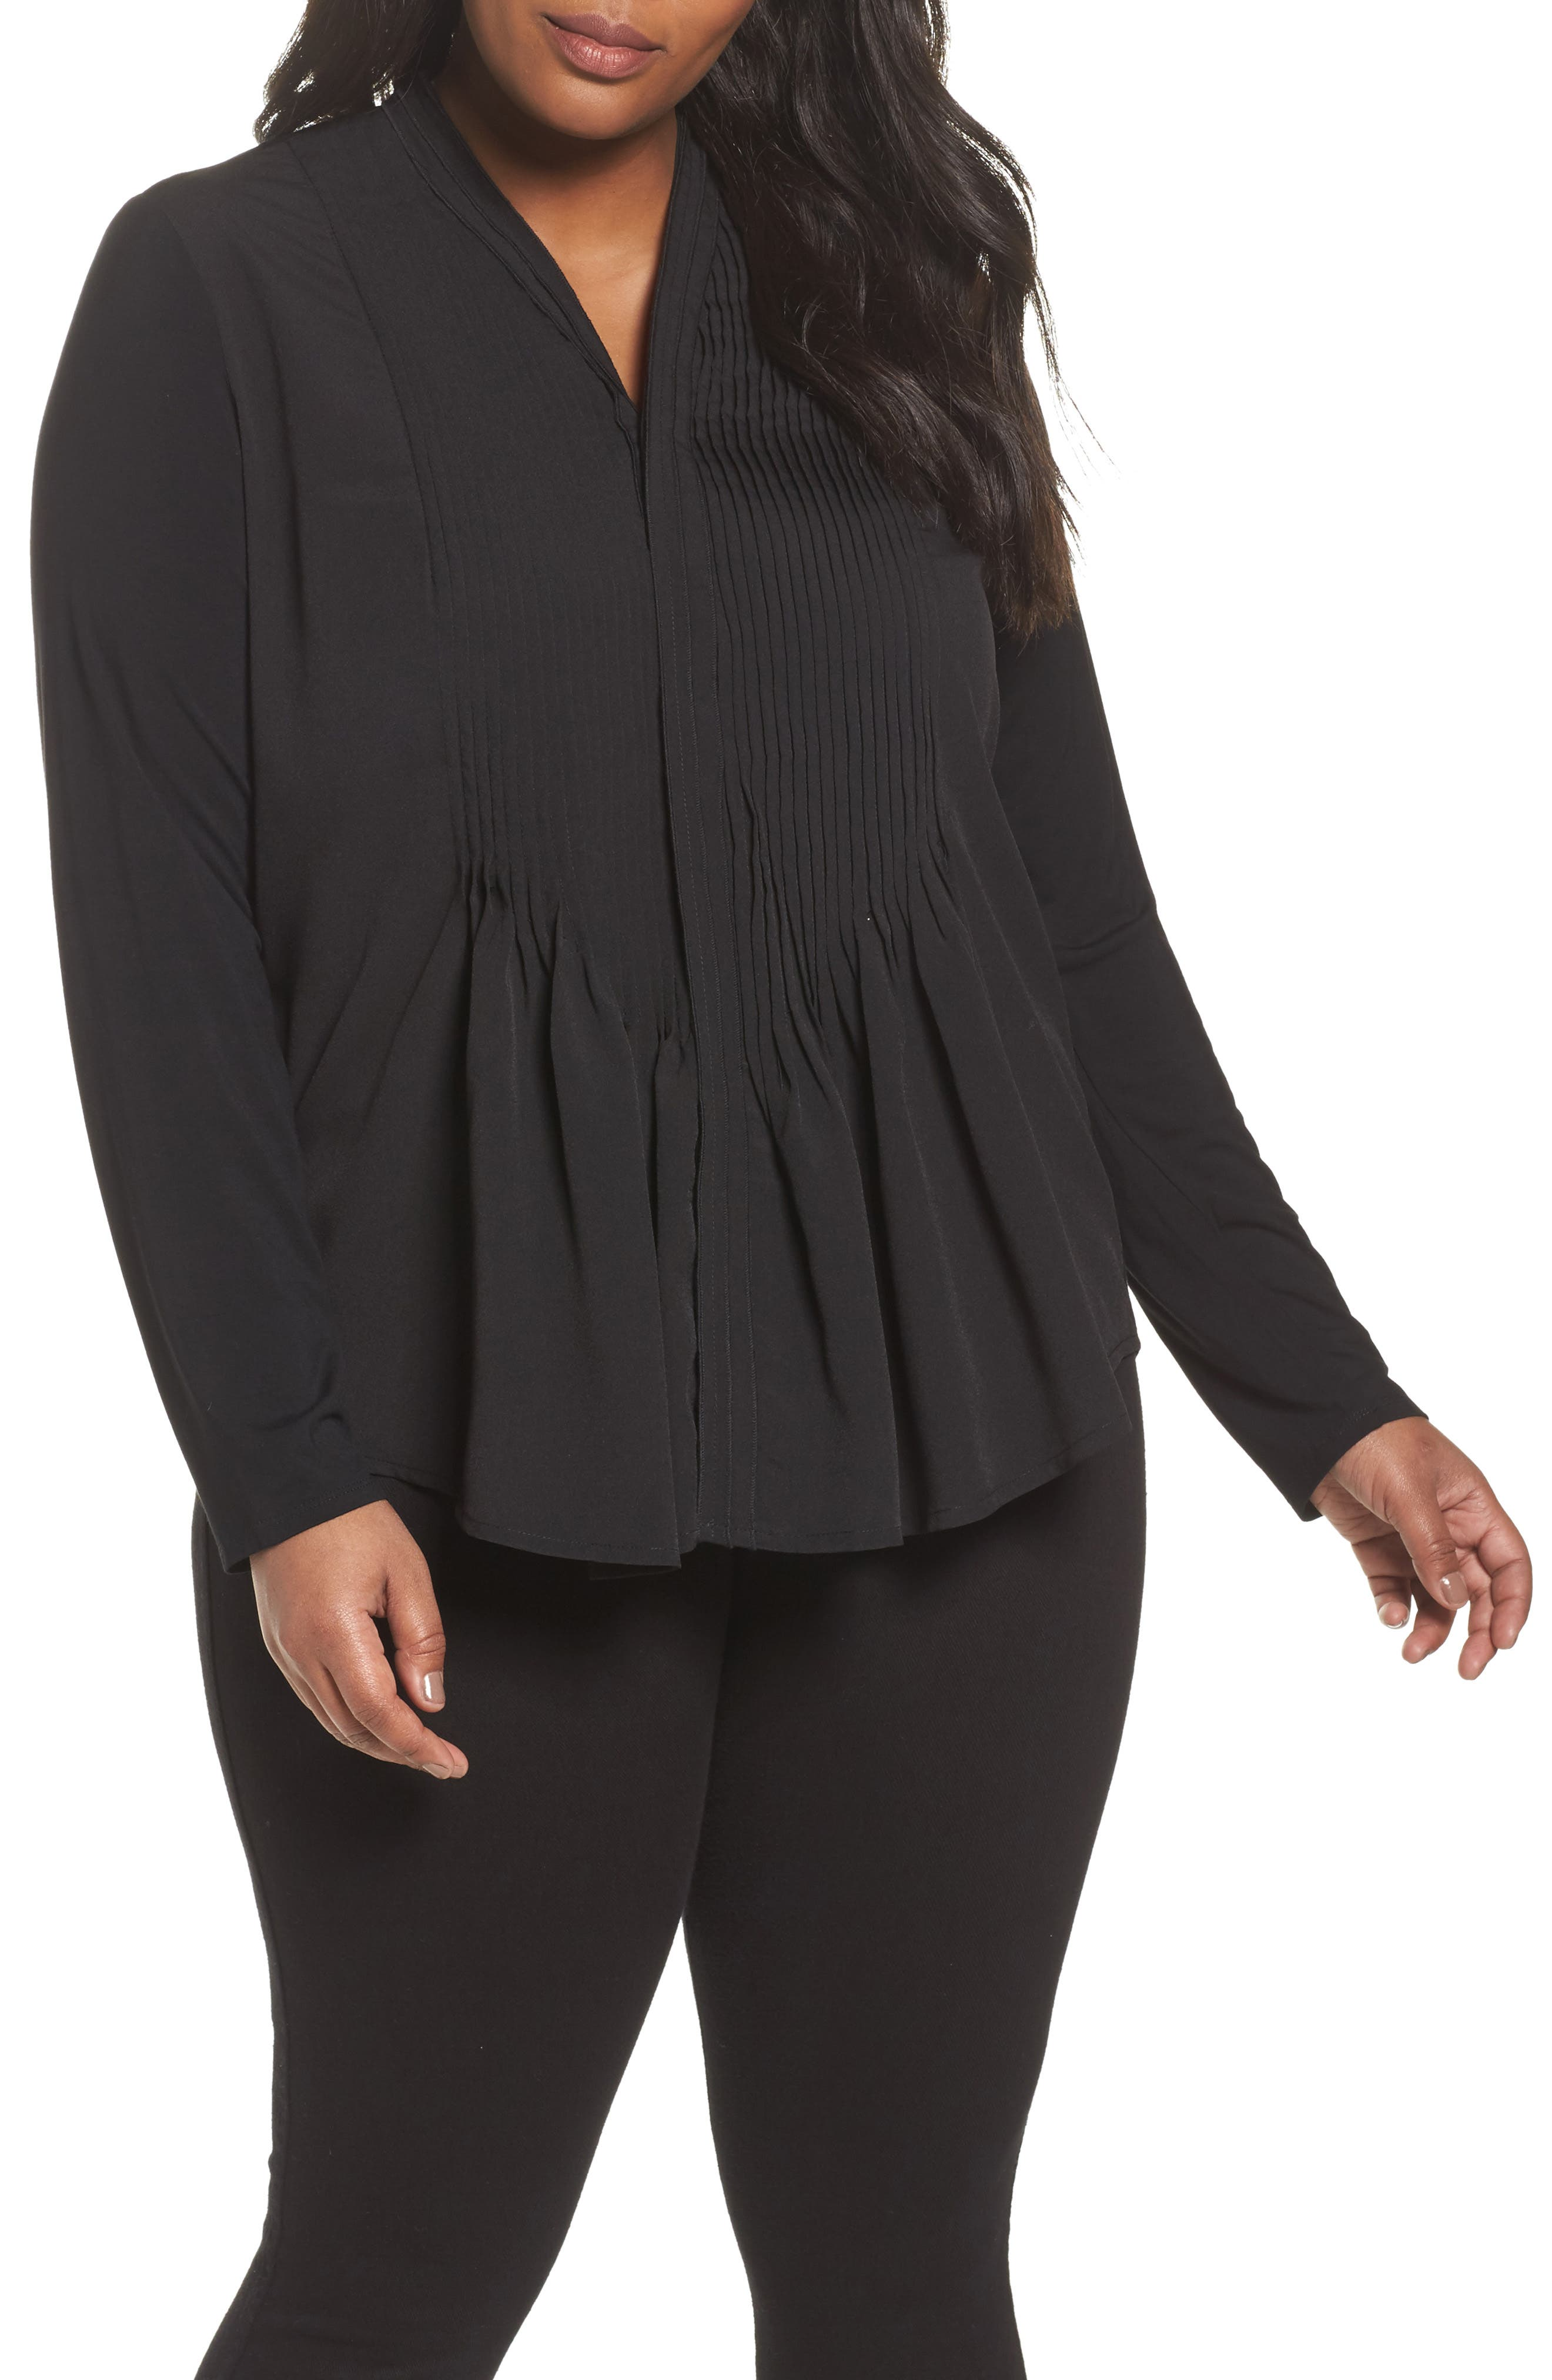 Alternate Image 1 Selected - Foxcroft Carrie Crepe & Jersey Top (Plus Size)